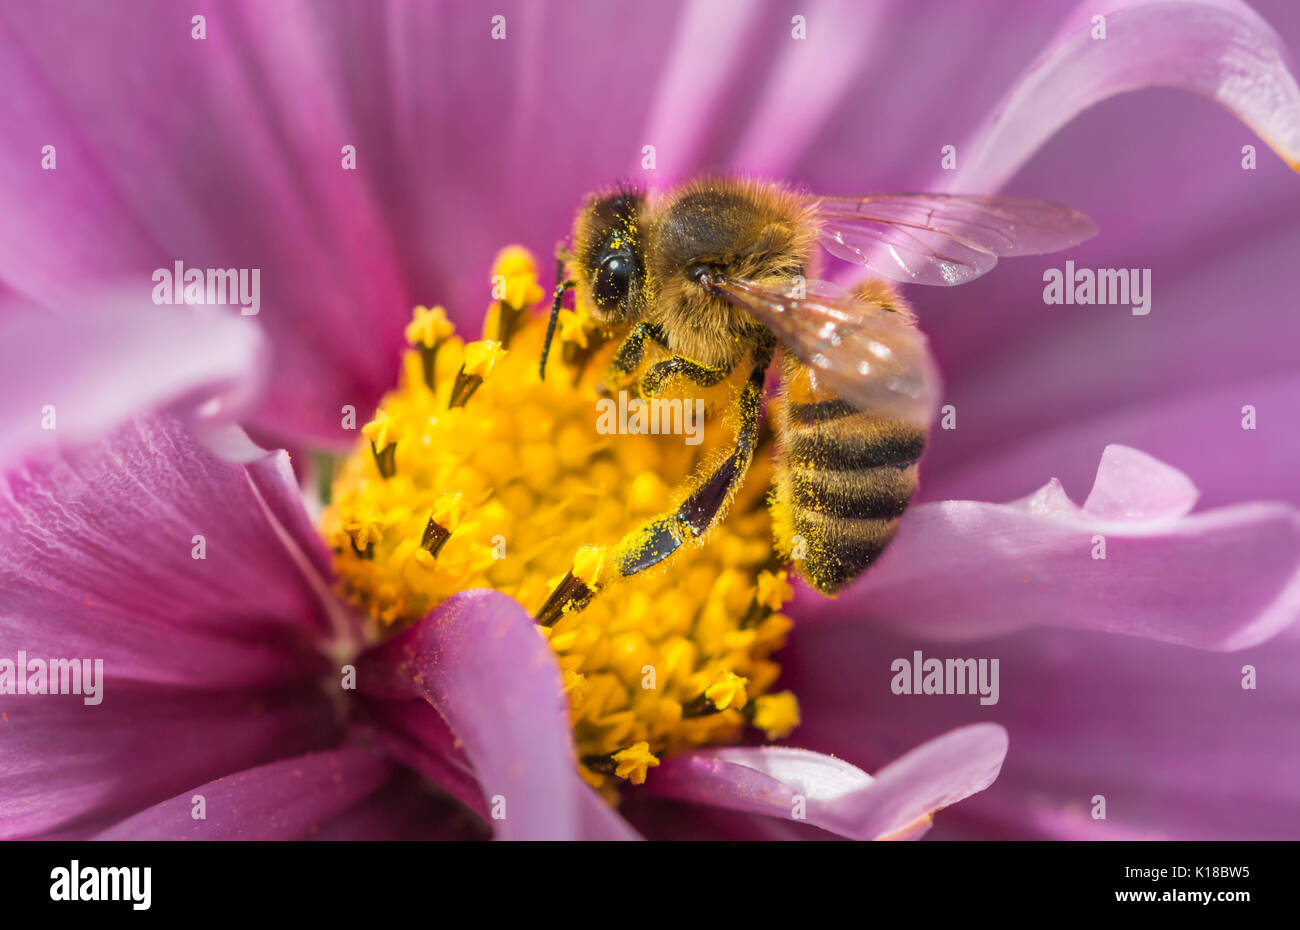 European Honey Bee macro (Apis mellifera) on a Cosmos bipinnatus (Mexican aster) flower collected nectar / pollinating, - Stock Image